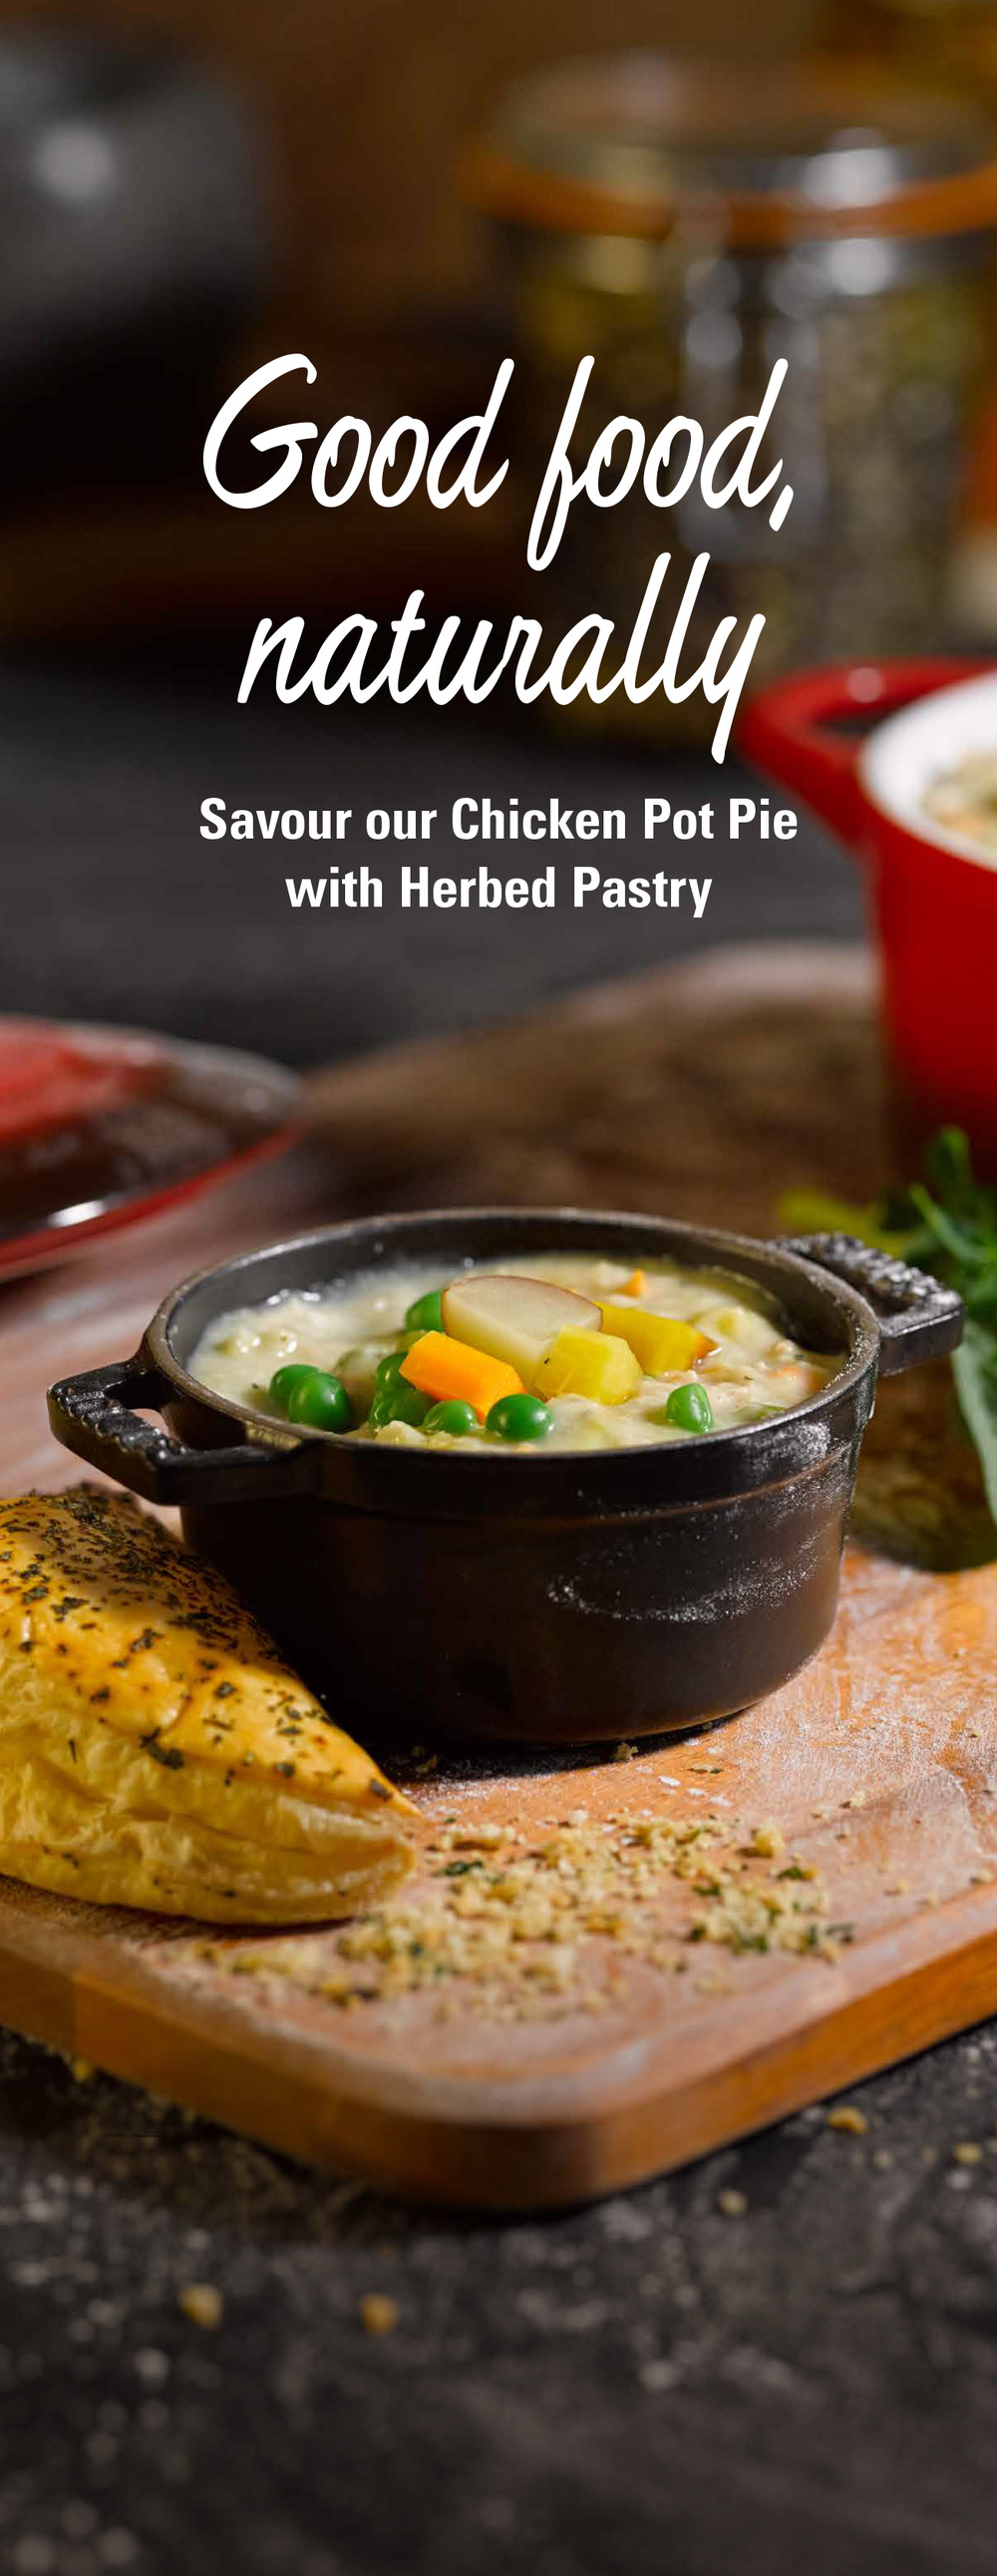 ge_2015_fall_slim_board_chicken_pot_pie_v4.jpg